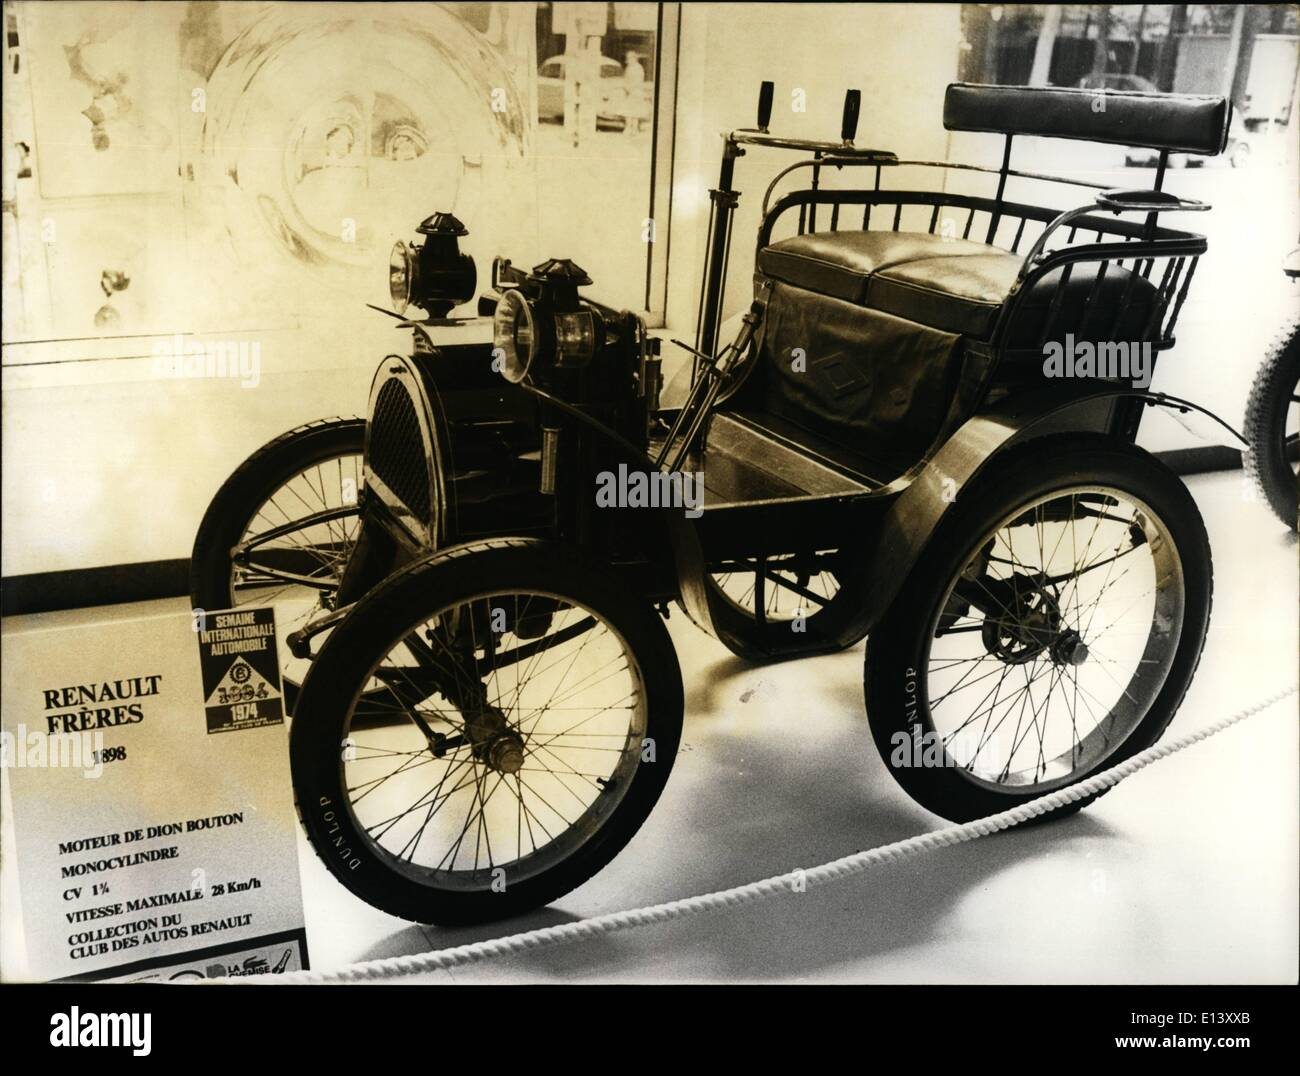 Mar. 27, 2012 - An exhibition of antique cars is taking place at Cardin's in Paris, within the framework of the International Automobile Weekk. Photo shows The famous ''De dion bouton'' auto of Renault Freres of 1898. This car is equipped with a monocylindric motor of 1 3/4 CV. reaching a max. speed of 28 kms per hour. The handsome car comes from the collection of the Club des Autos Renault. - Stock Image